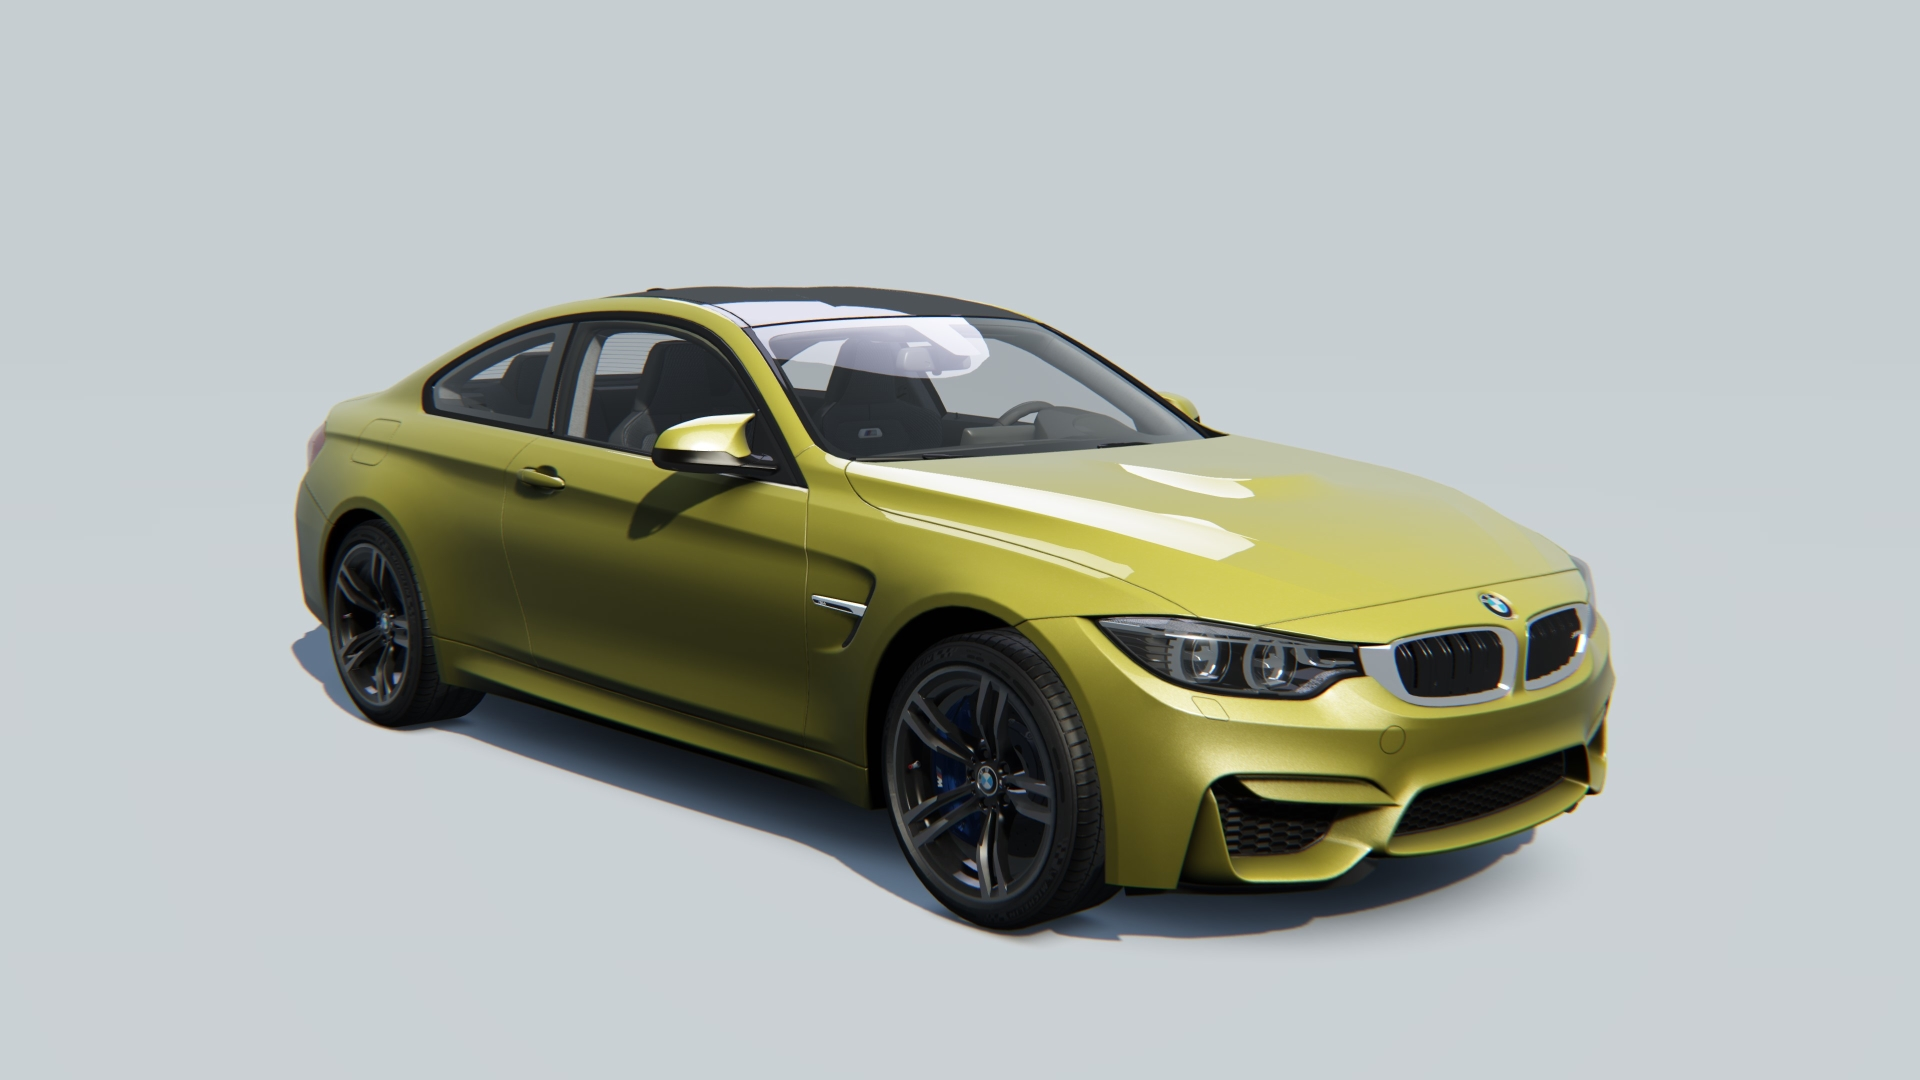 Z4 E89 35is Assetto Corsa